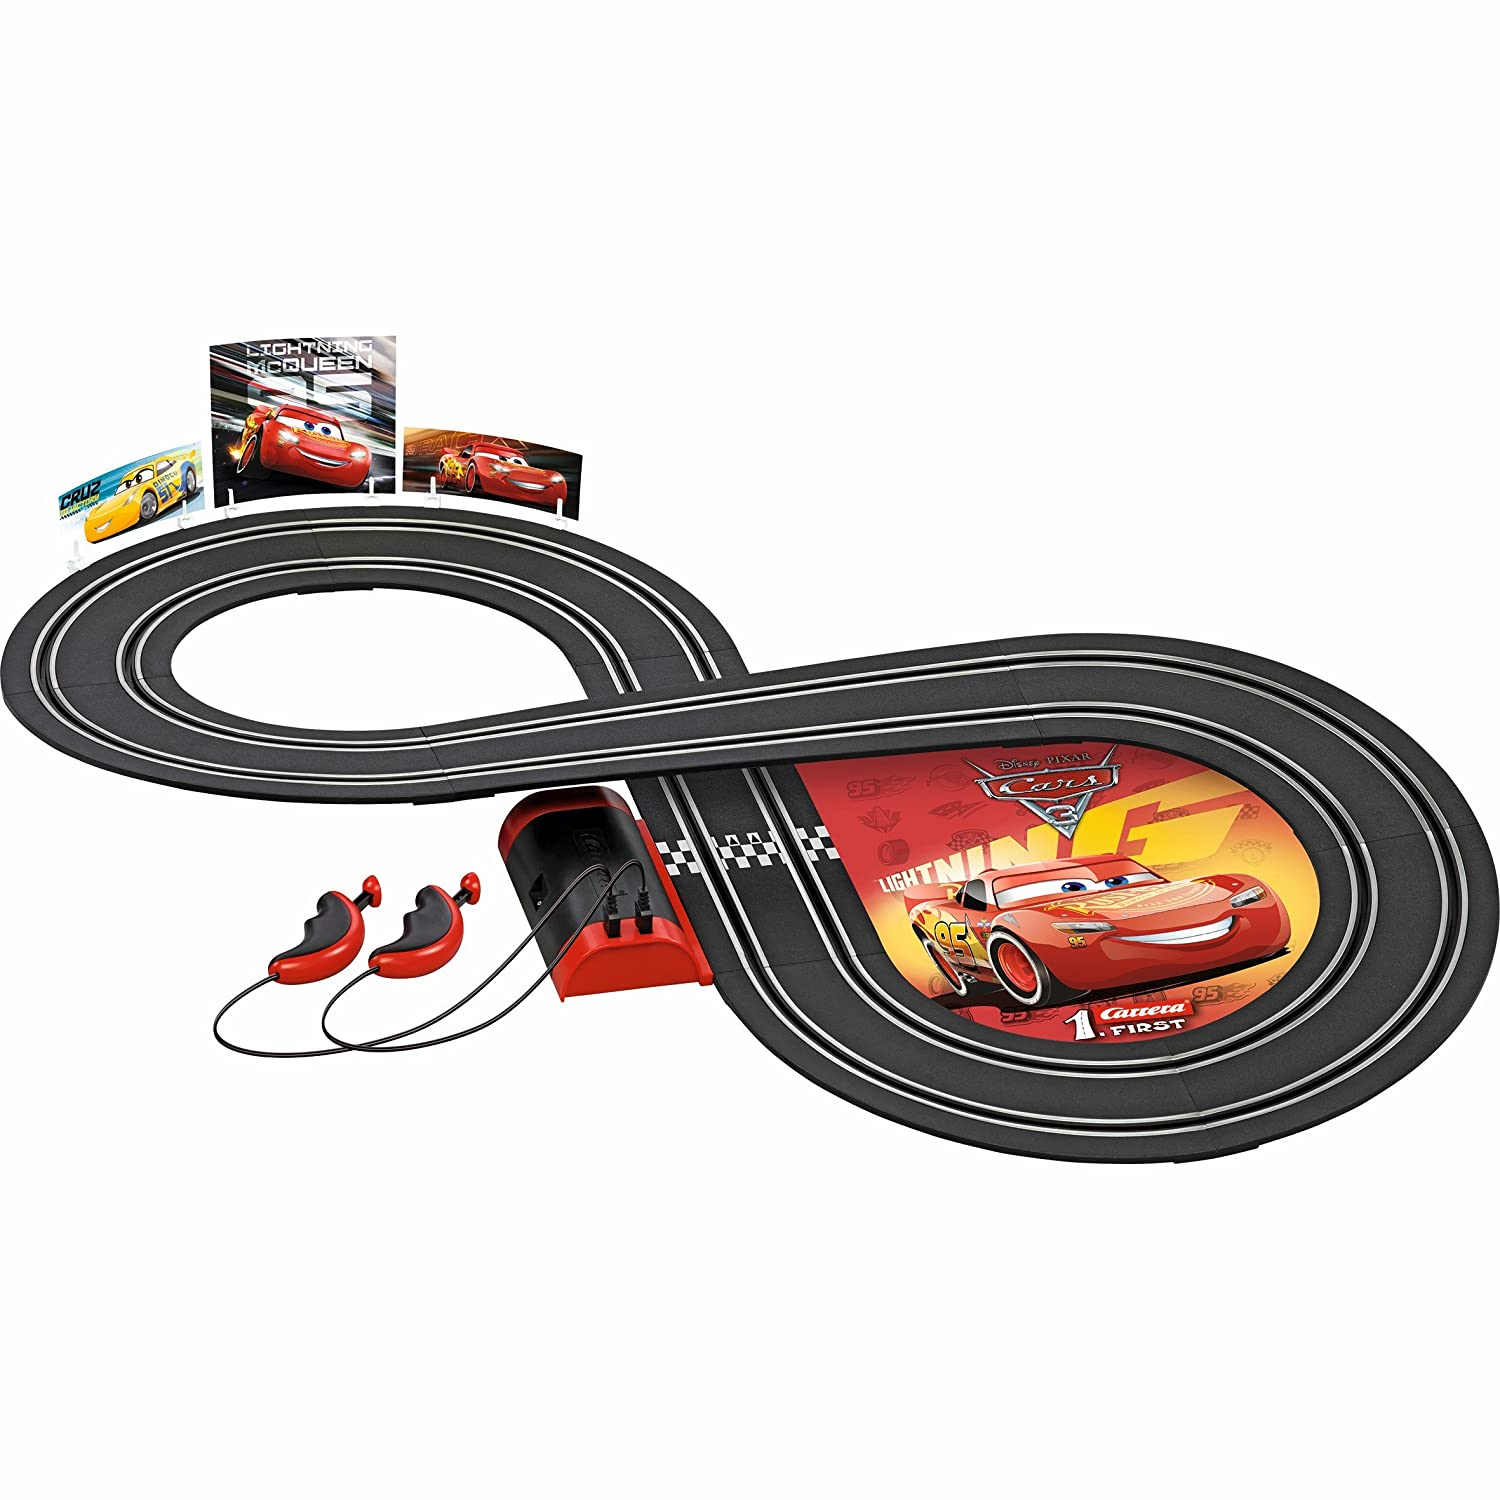 amazon com: carrera first disney/pixar cars 3 - slot car race track -  includes 2 cars: lightning mcqueen and dinoco cruz - battery-powered  beginner racing